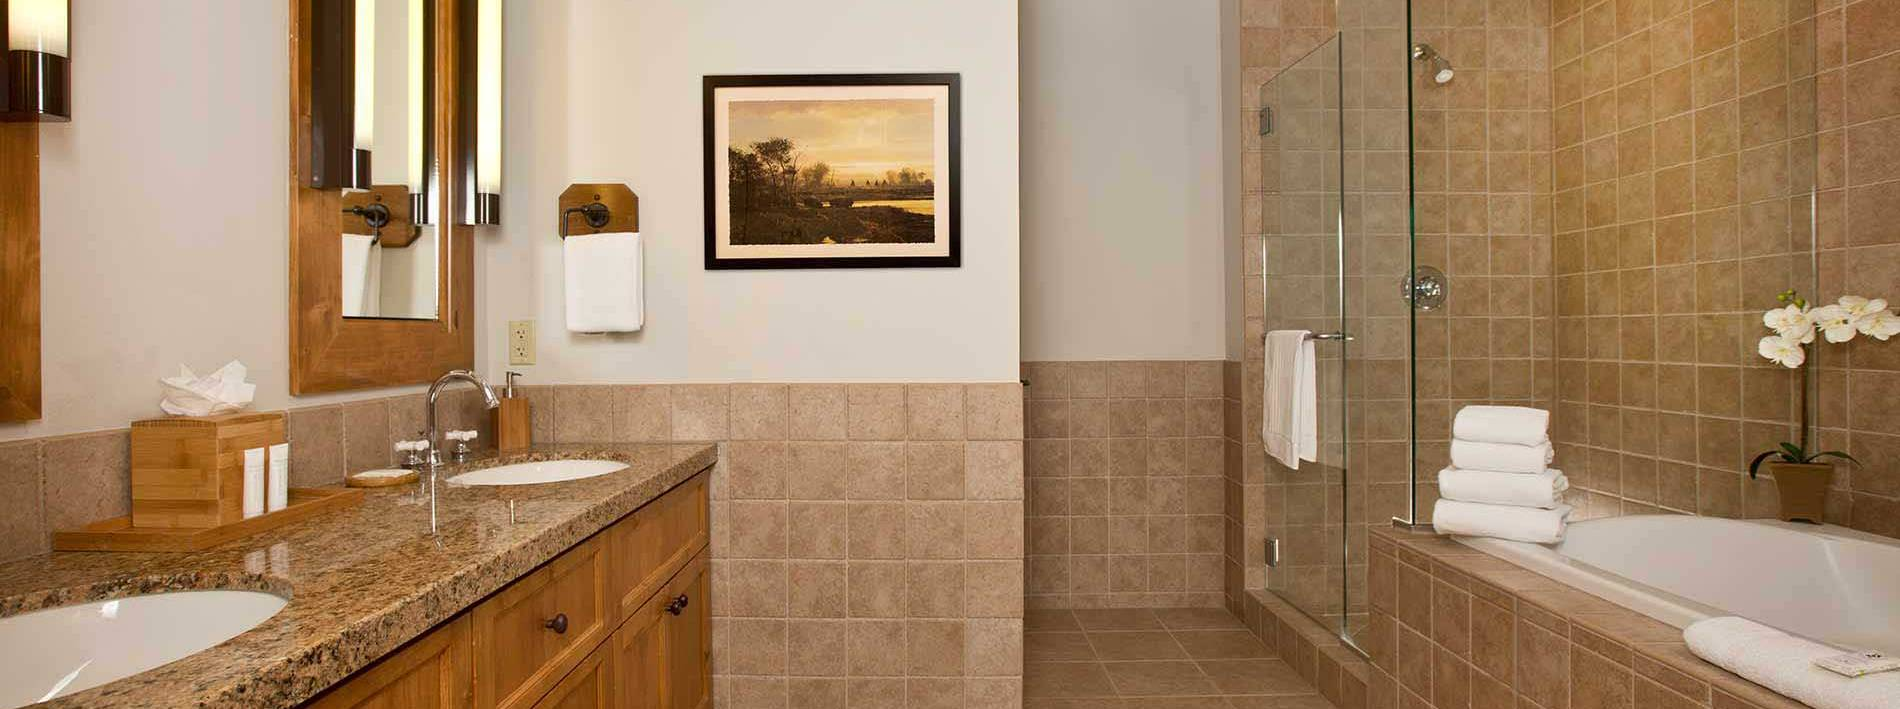 Large bathroom in this 3.5 bathroom private home rental